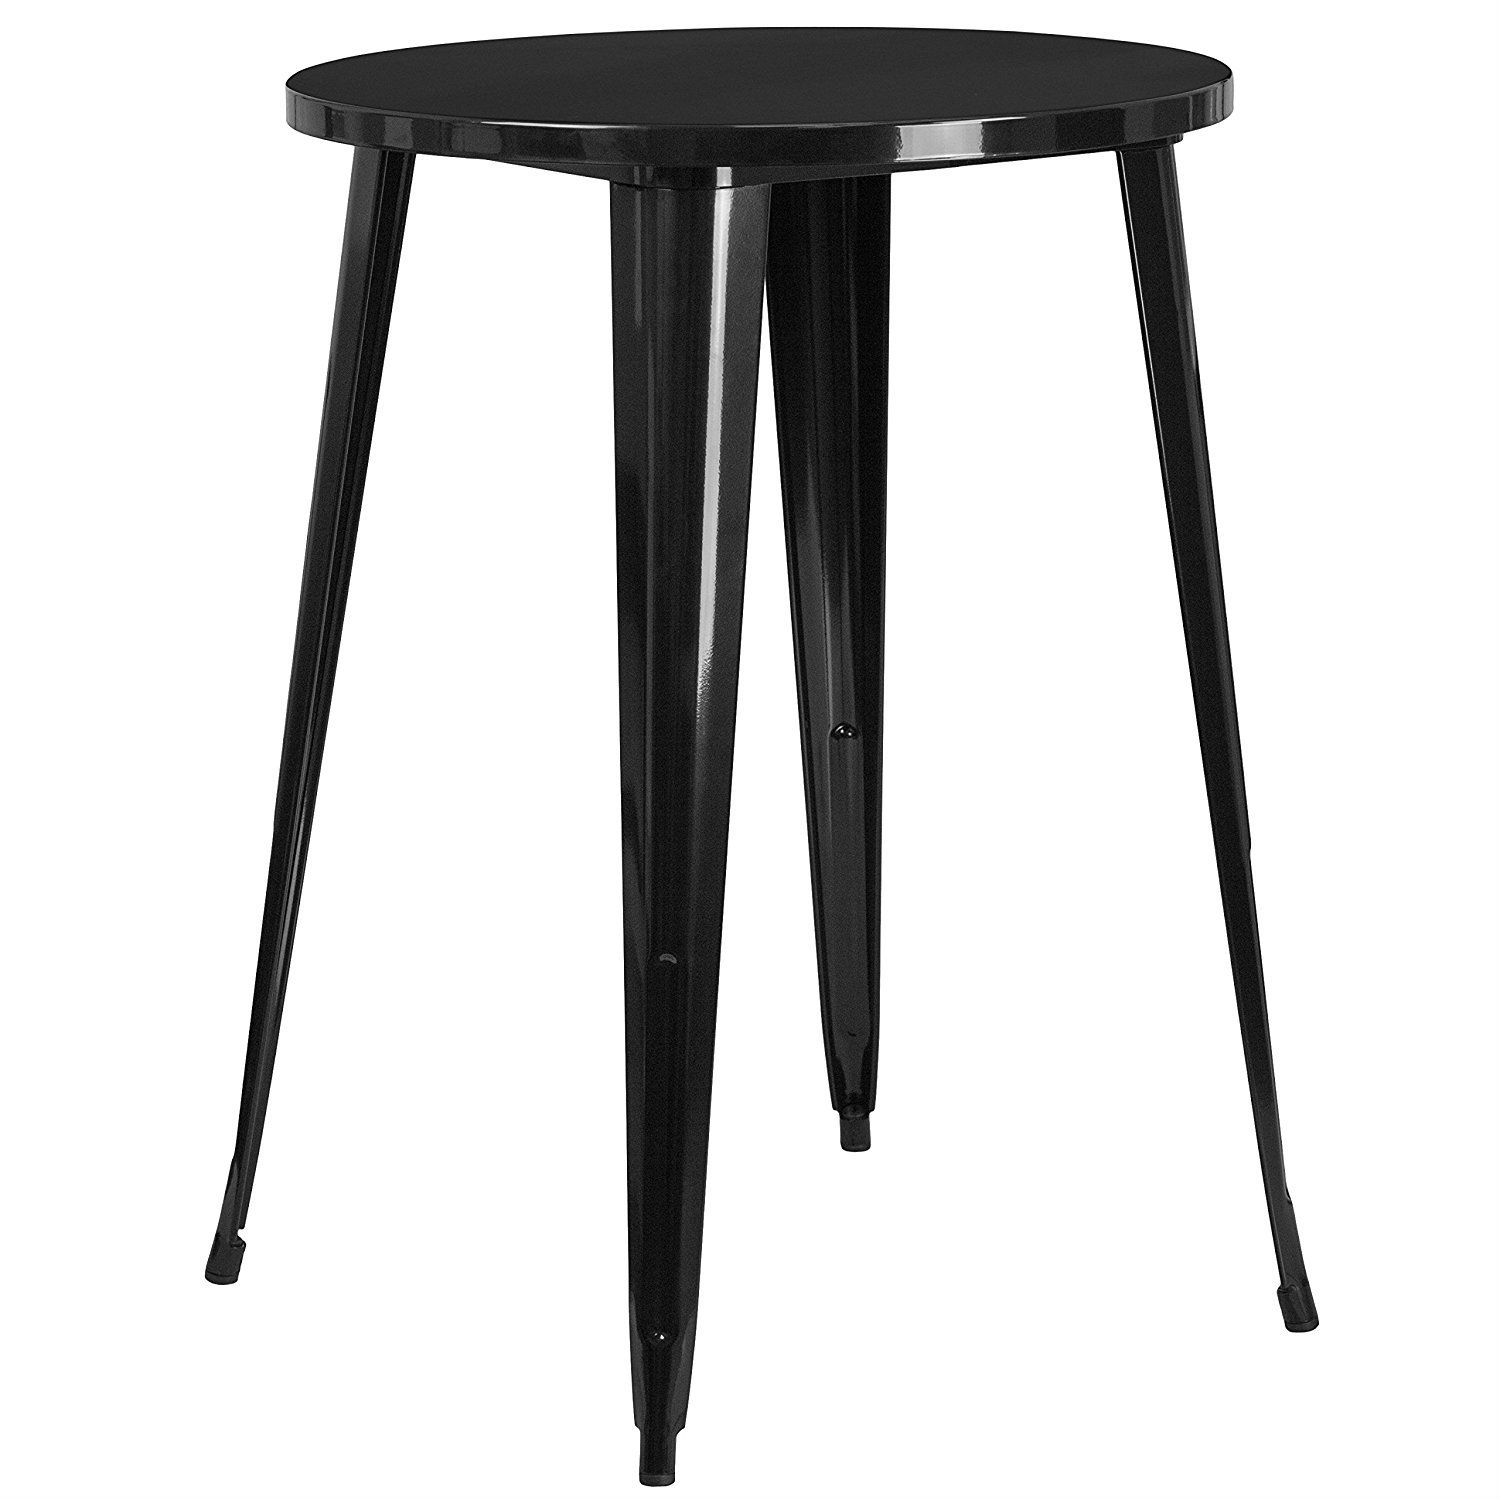 Modern 30 inch outdoor round metal cafe bar patio table in black fastfurnishings com